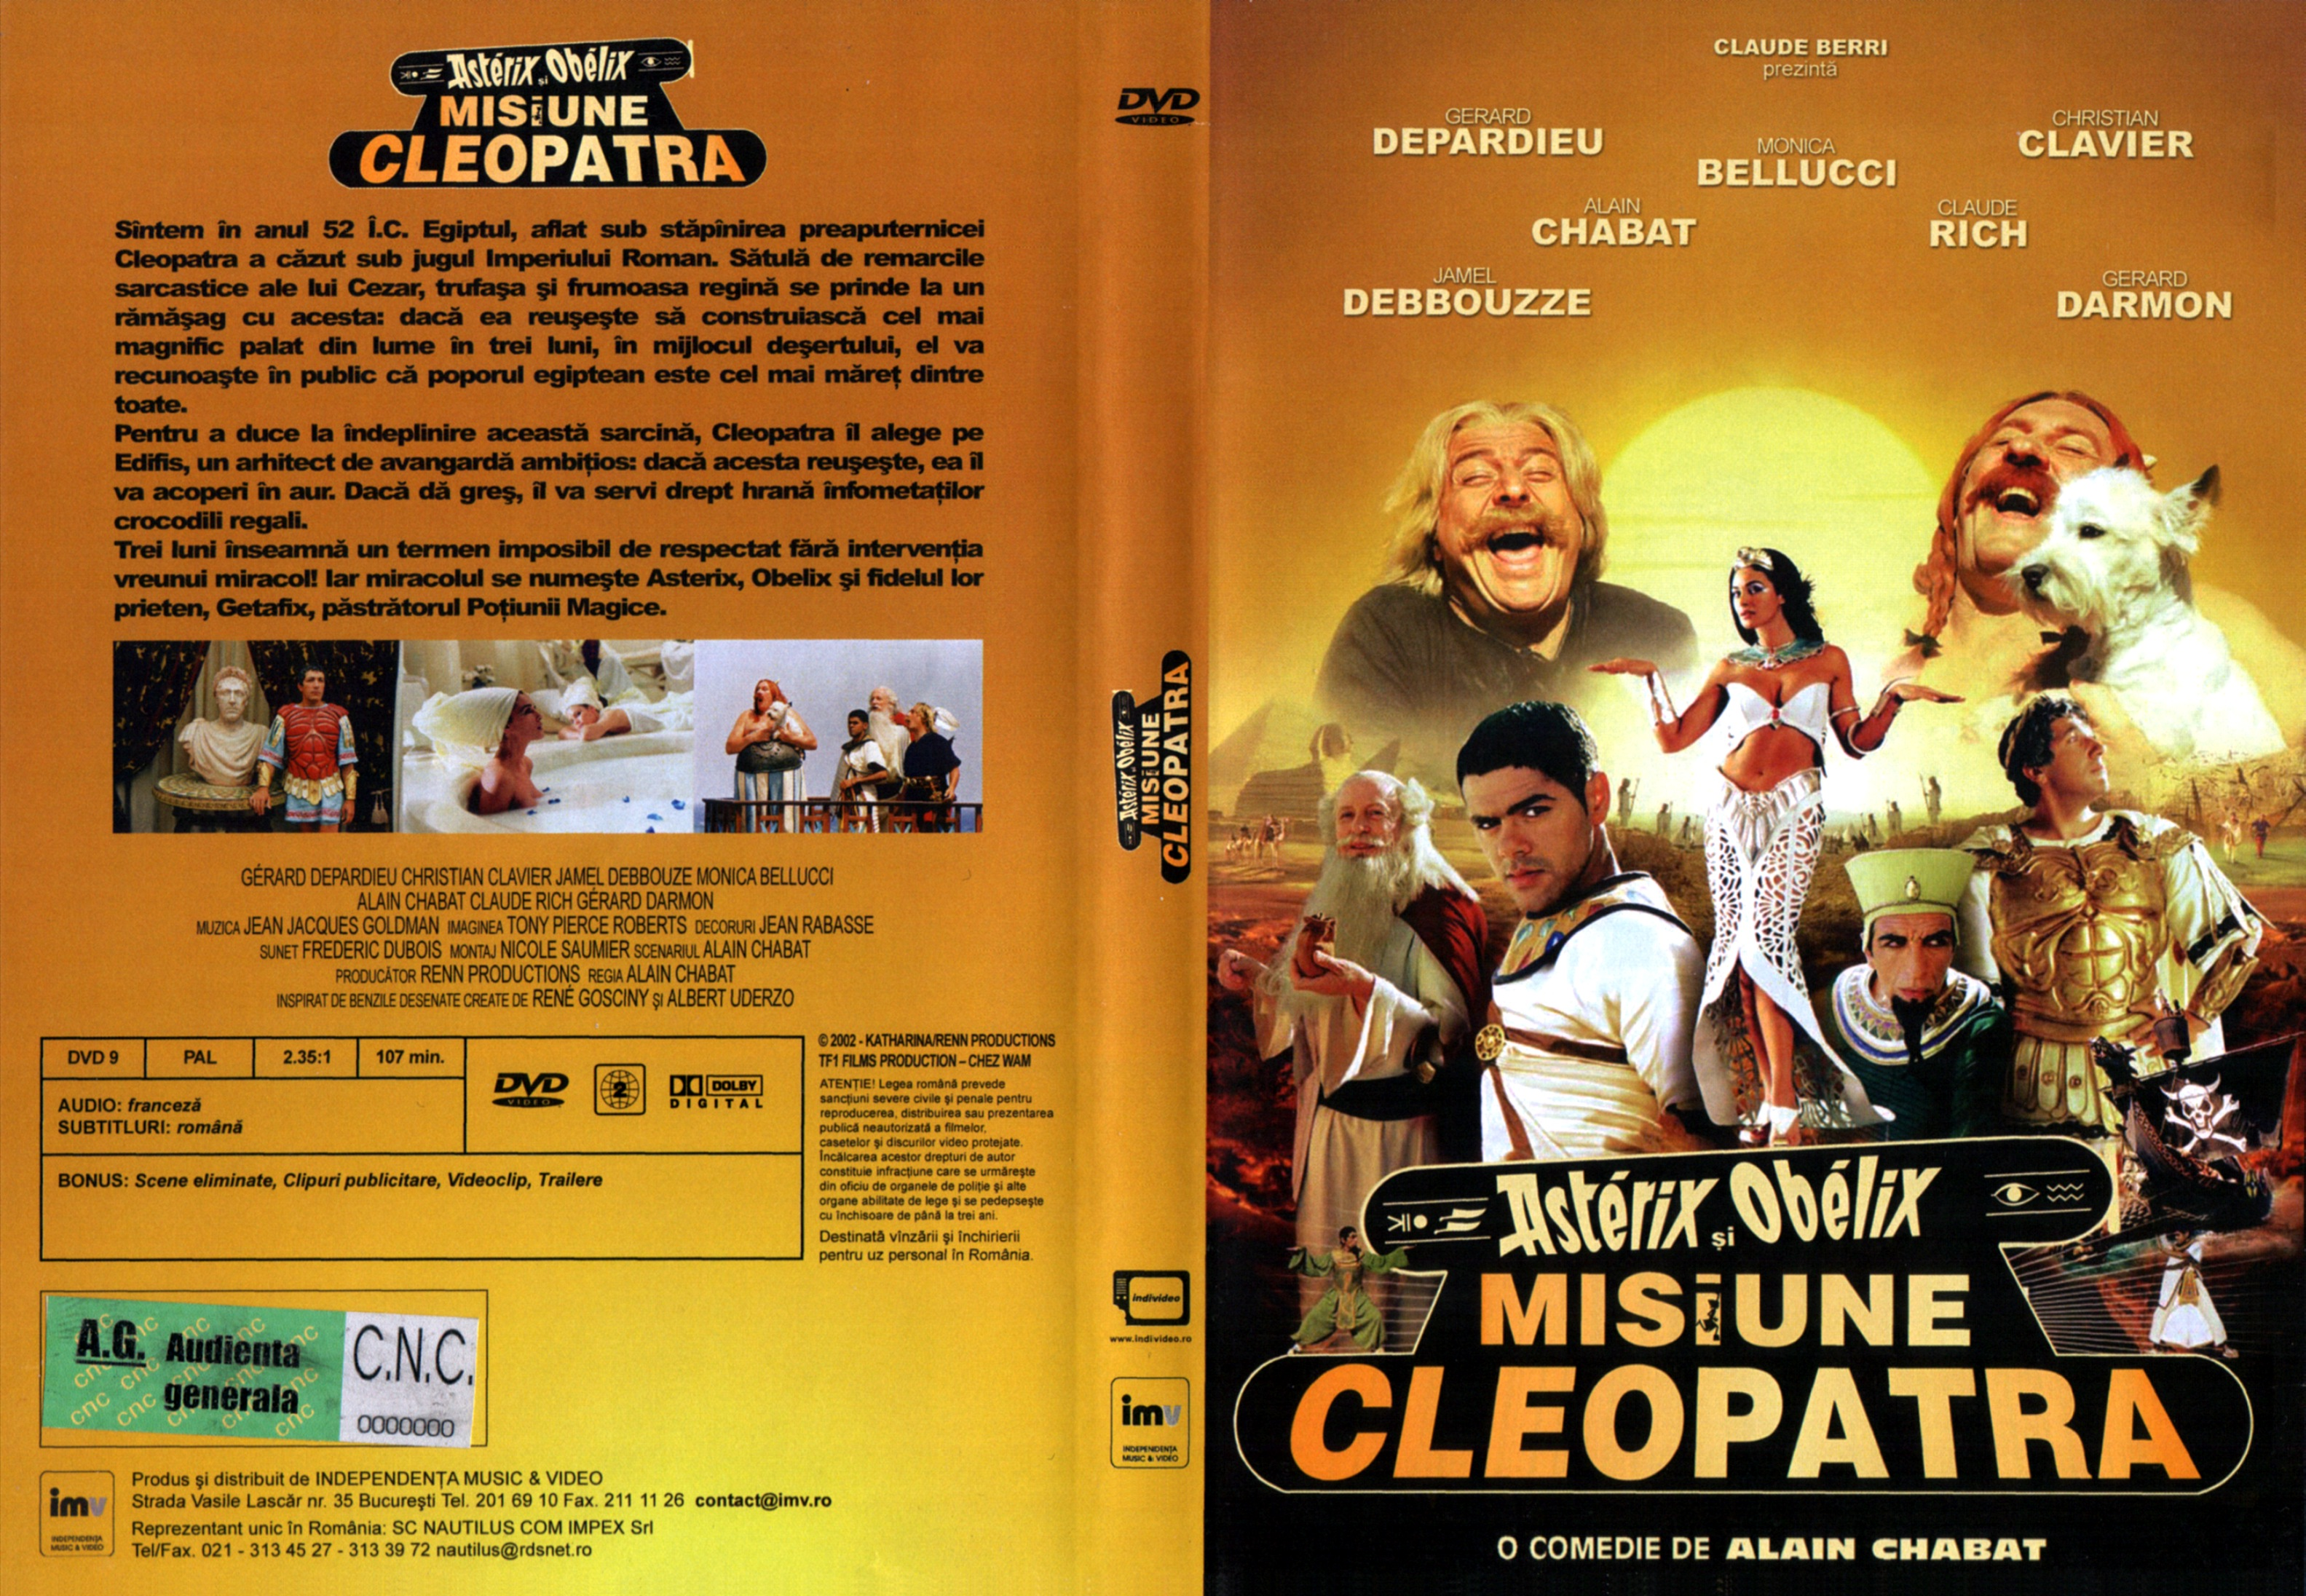 Covers Box Sk Asterix Obelix Mission Cleopatra High Quality Dvd Blueray Movie